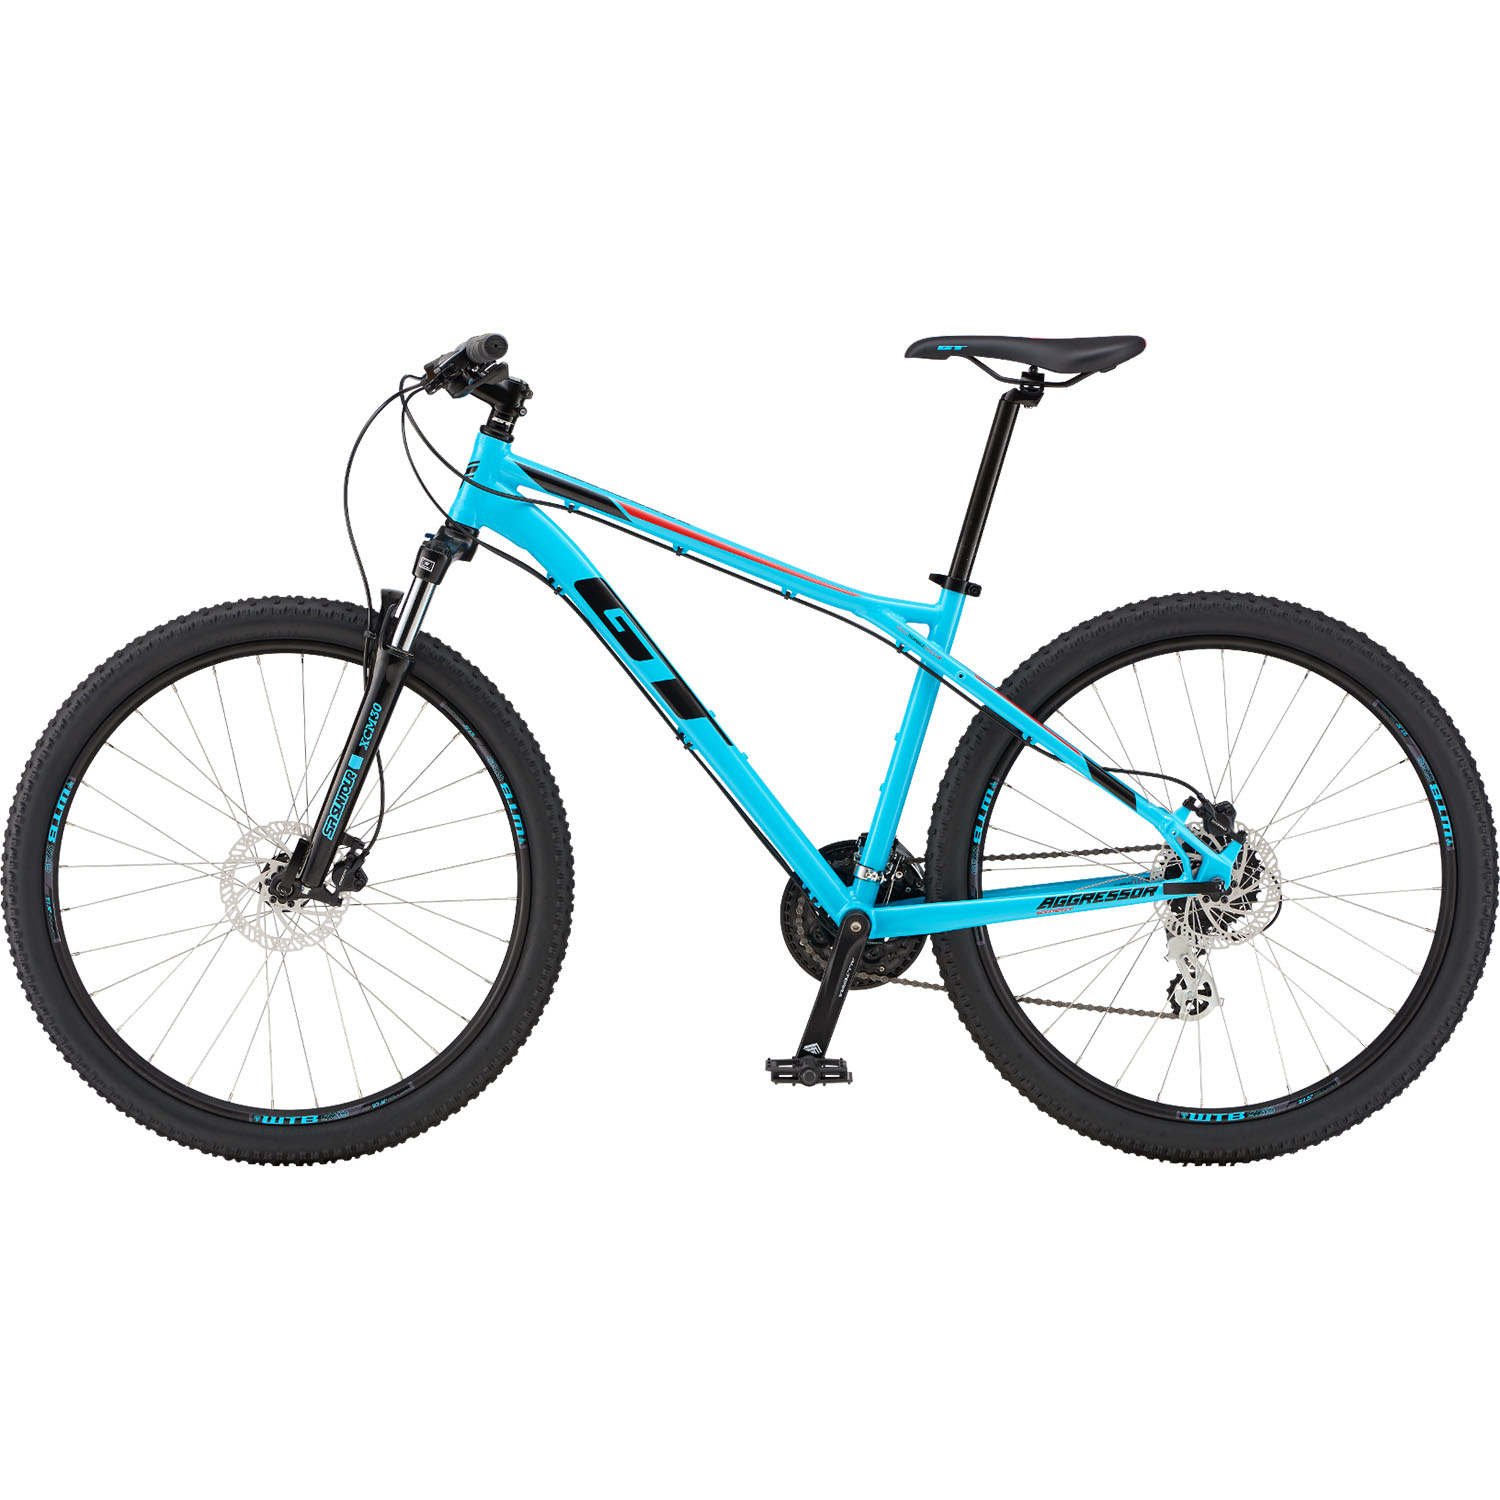 gt aggressor expert 27 5 zoll mountainbike hardtail mtb. Black Bedroom Furniture Sets. Home Design Ideas